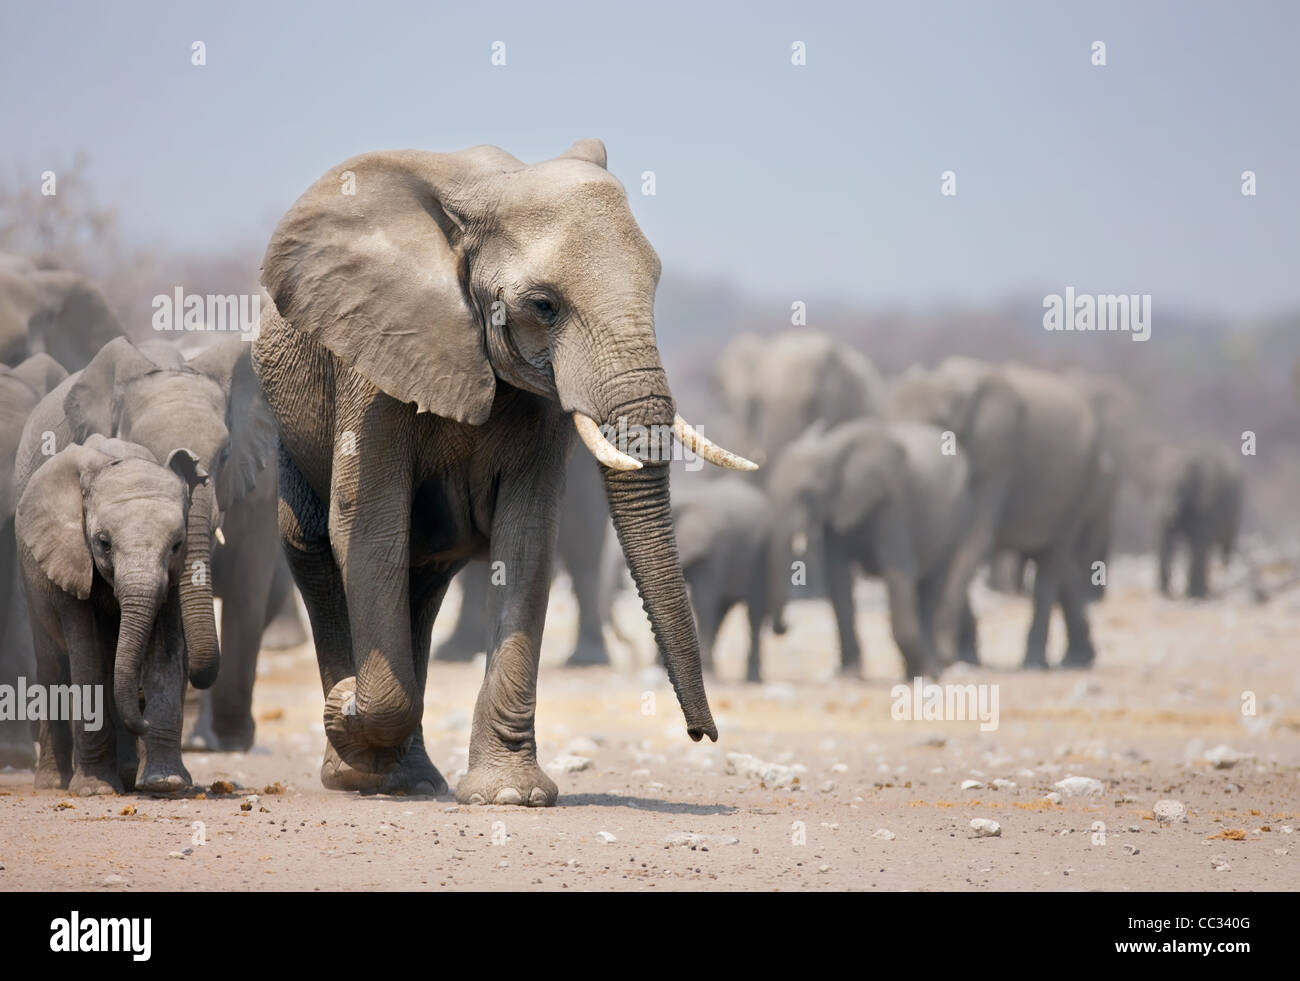 Elephant approaching with a large herd; African elephants; Loxodonta Africana - Stock Image